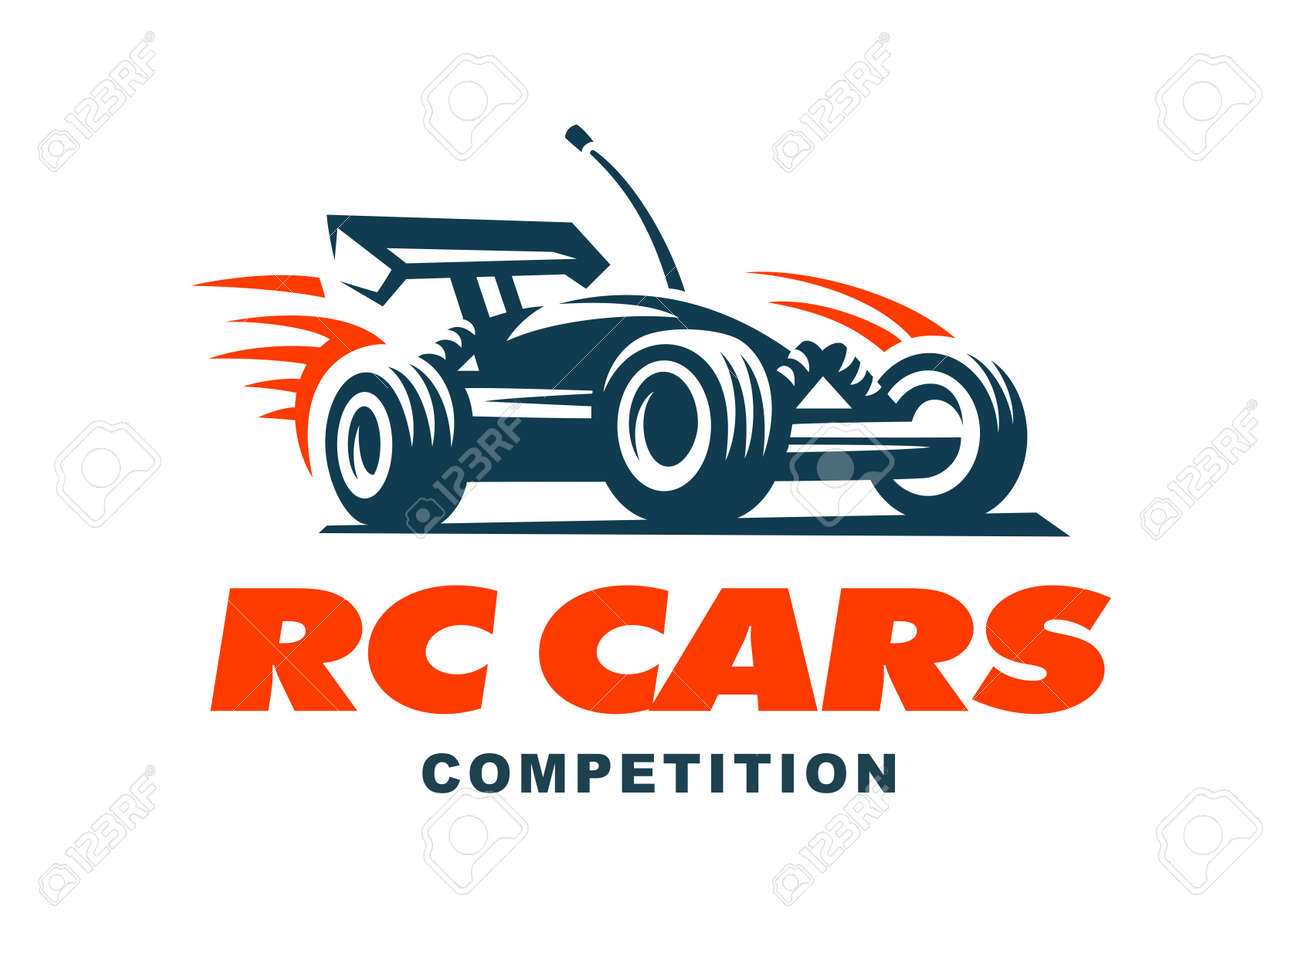 Radio controlled machine, RC, radio controlled toys design elements for emblems, icon, labels - 61425499